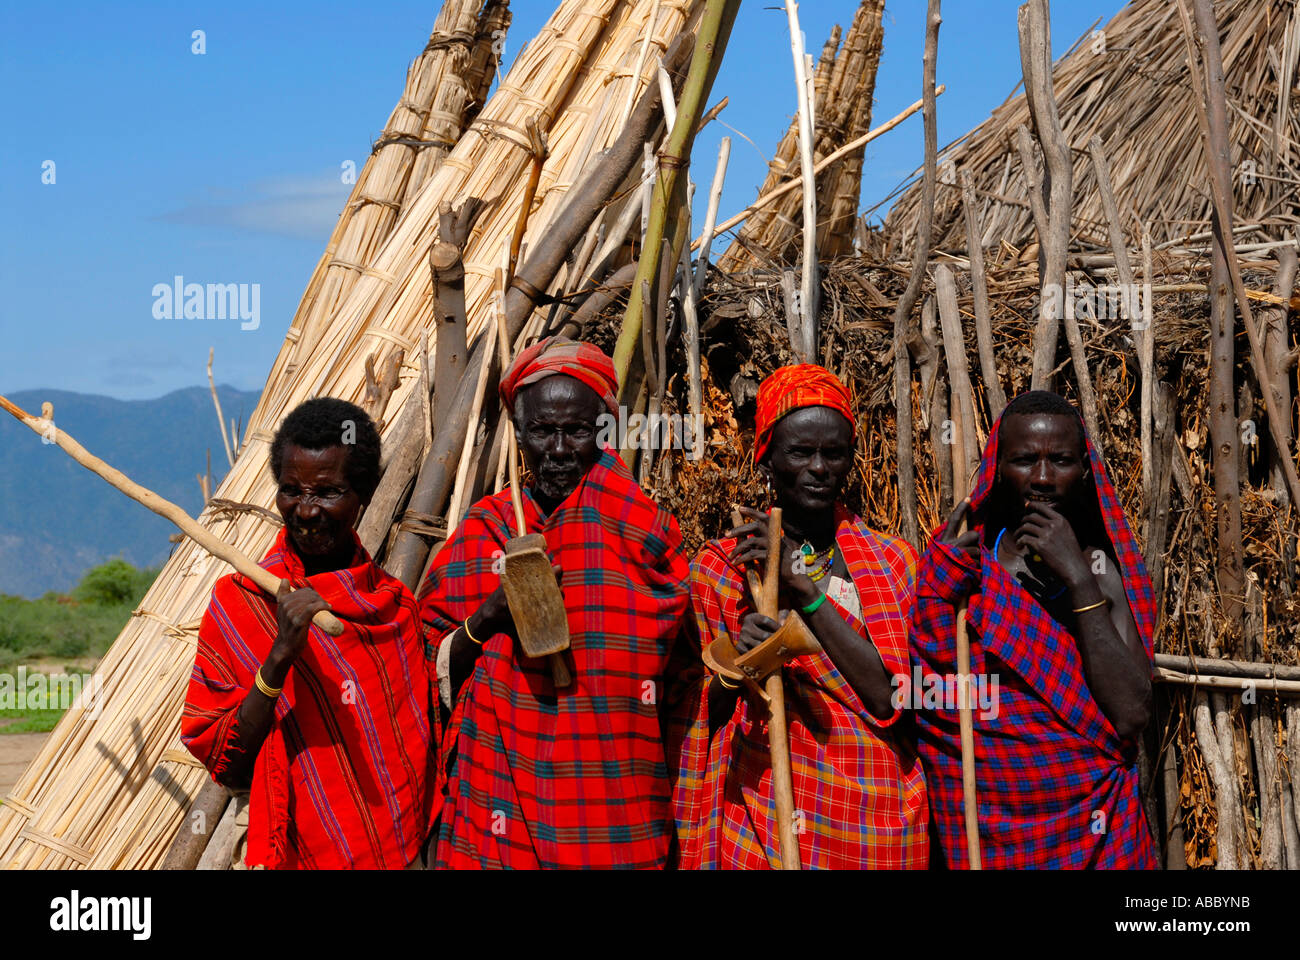 Four men chiefs elders of the Arbore people dressed in red capes in front of a hut Ethiopia - Stock Image